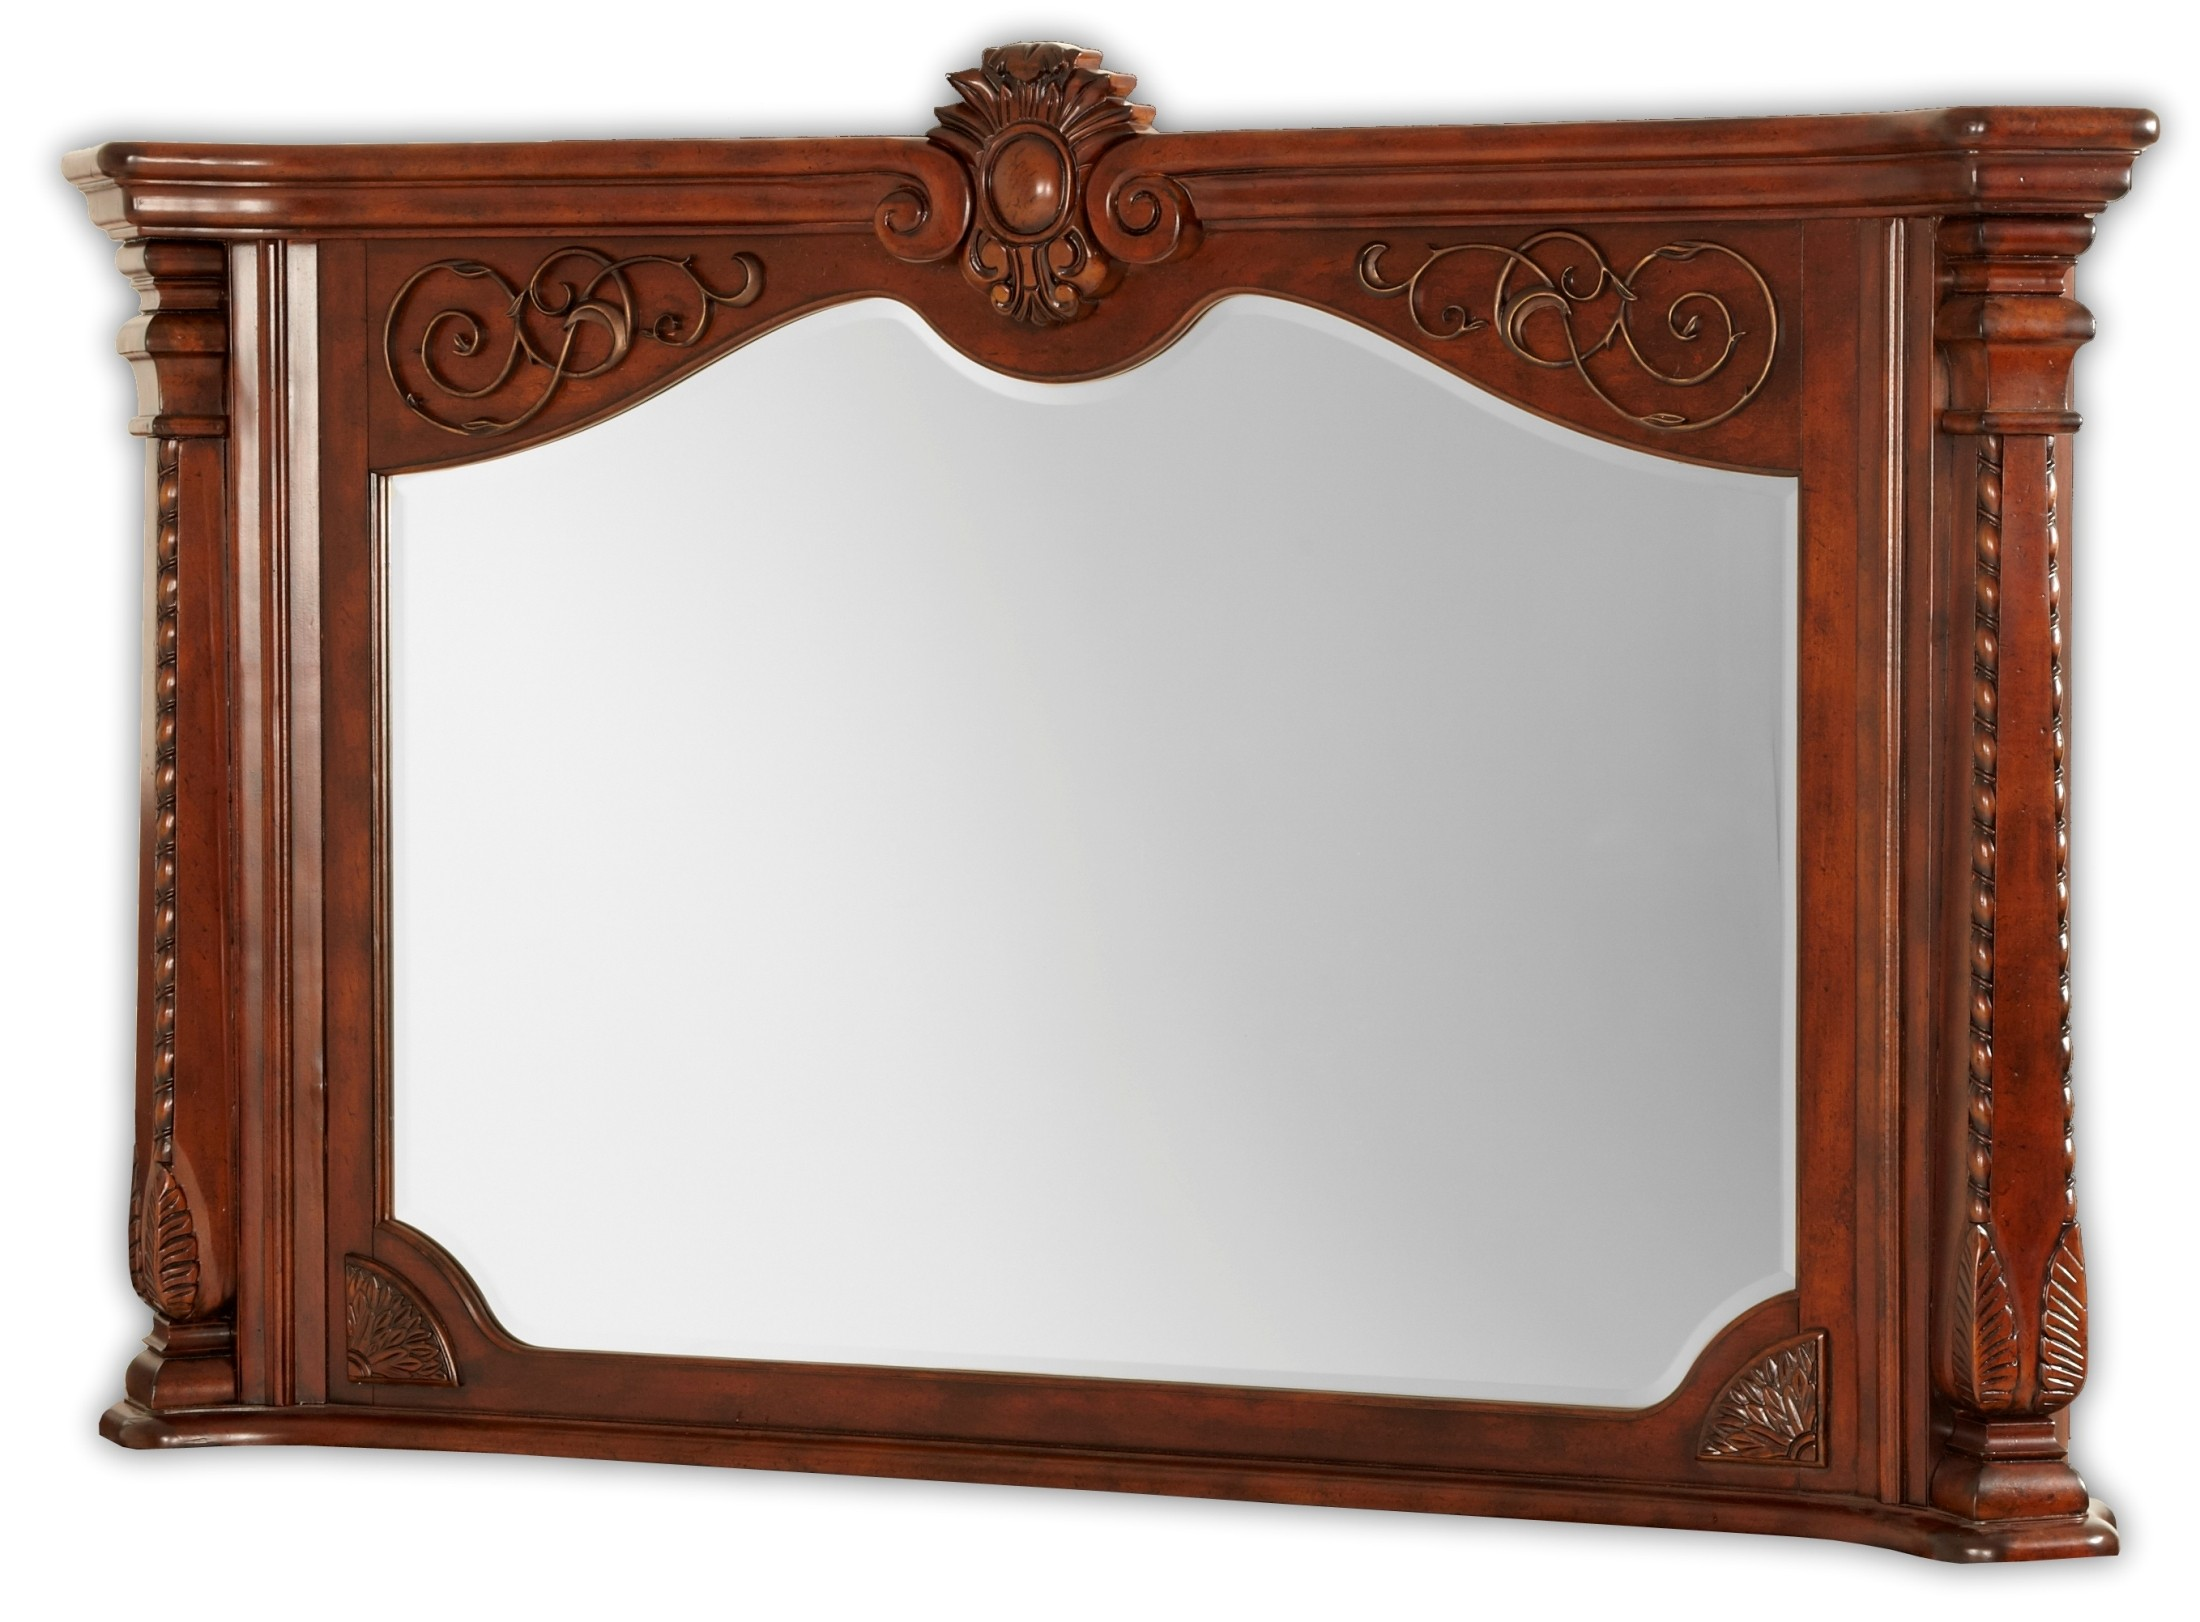 Windsor court fireplace mirror from aico 70227 54 for Fireplace mirrors